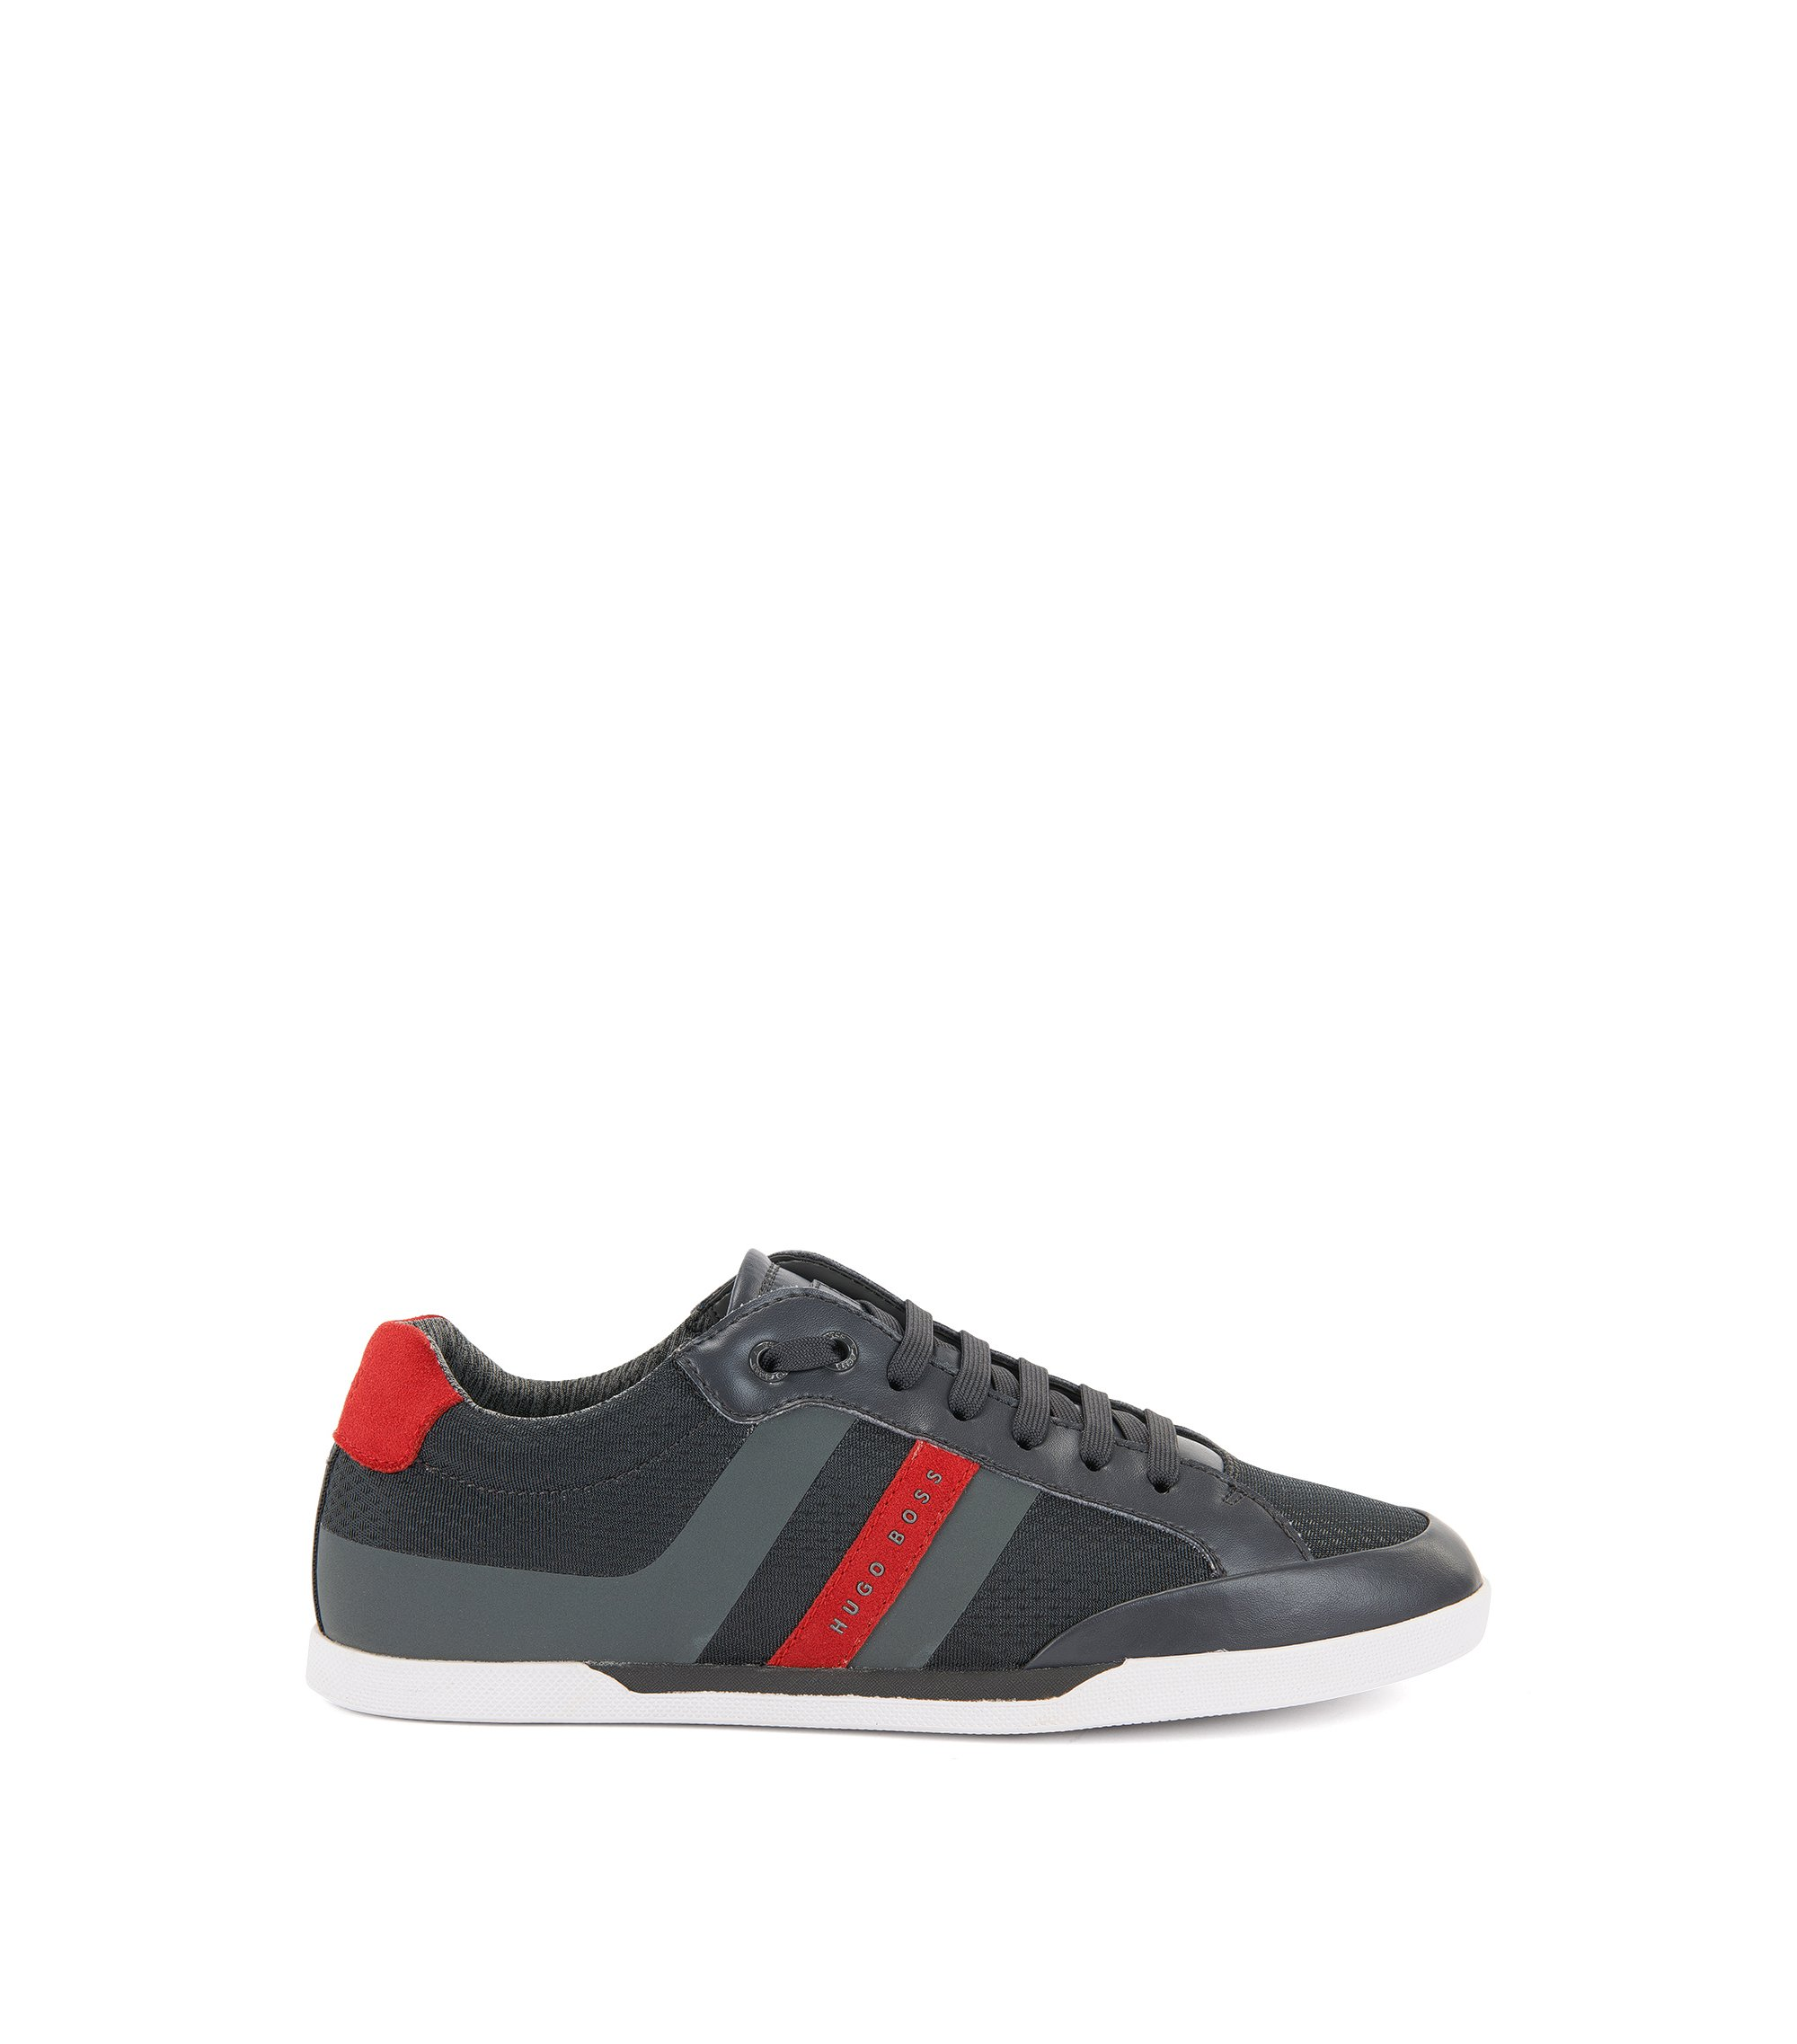 Mesh Sneaker | Shuttle Tenn It, Dark Grey